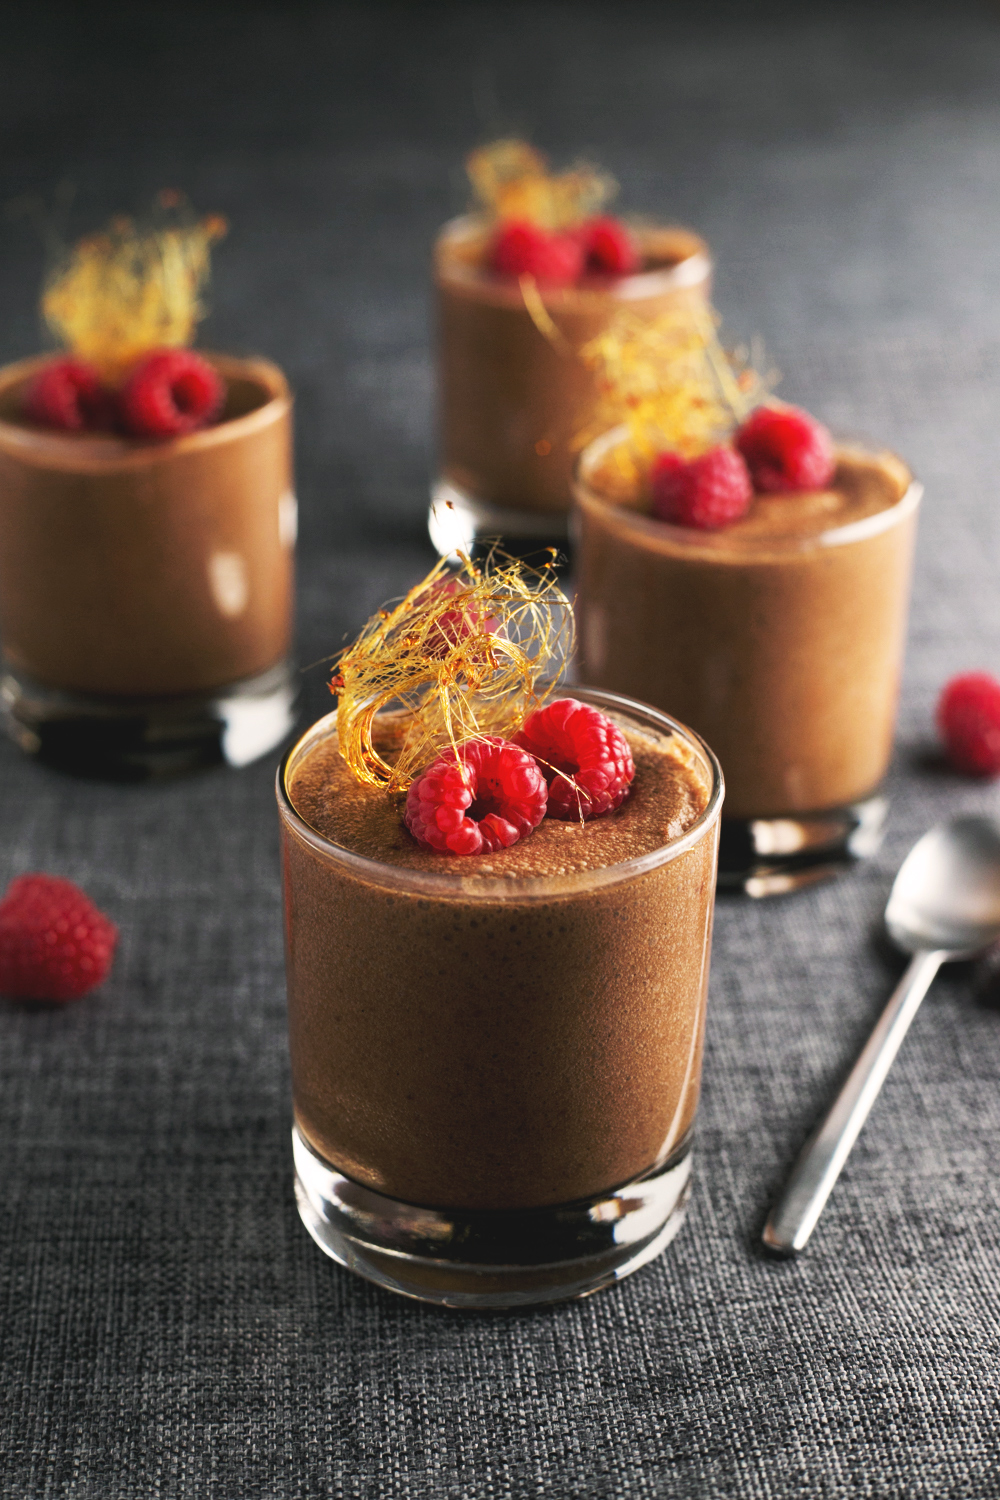 vegan chocolate mousse made with aquafaba chickpea brine. Black Bedroom Furniture Sets. Home Design Ideas